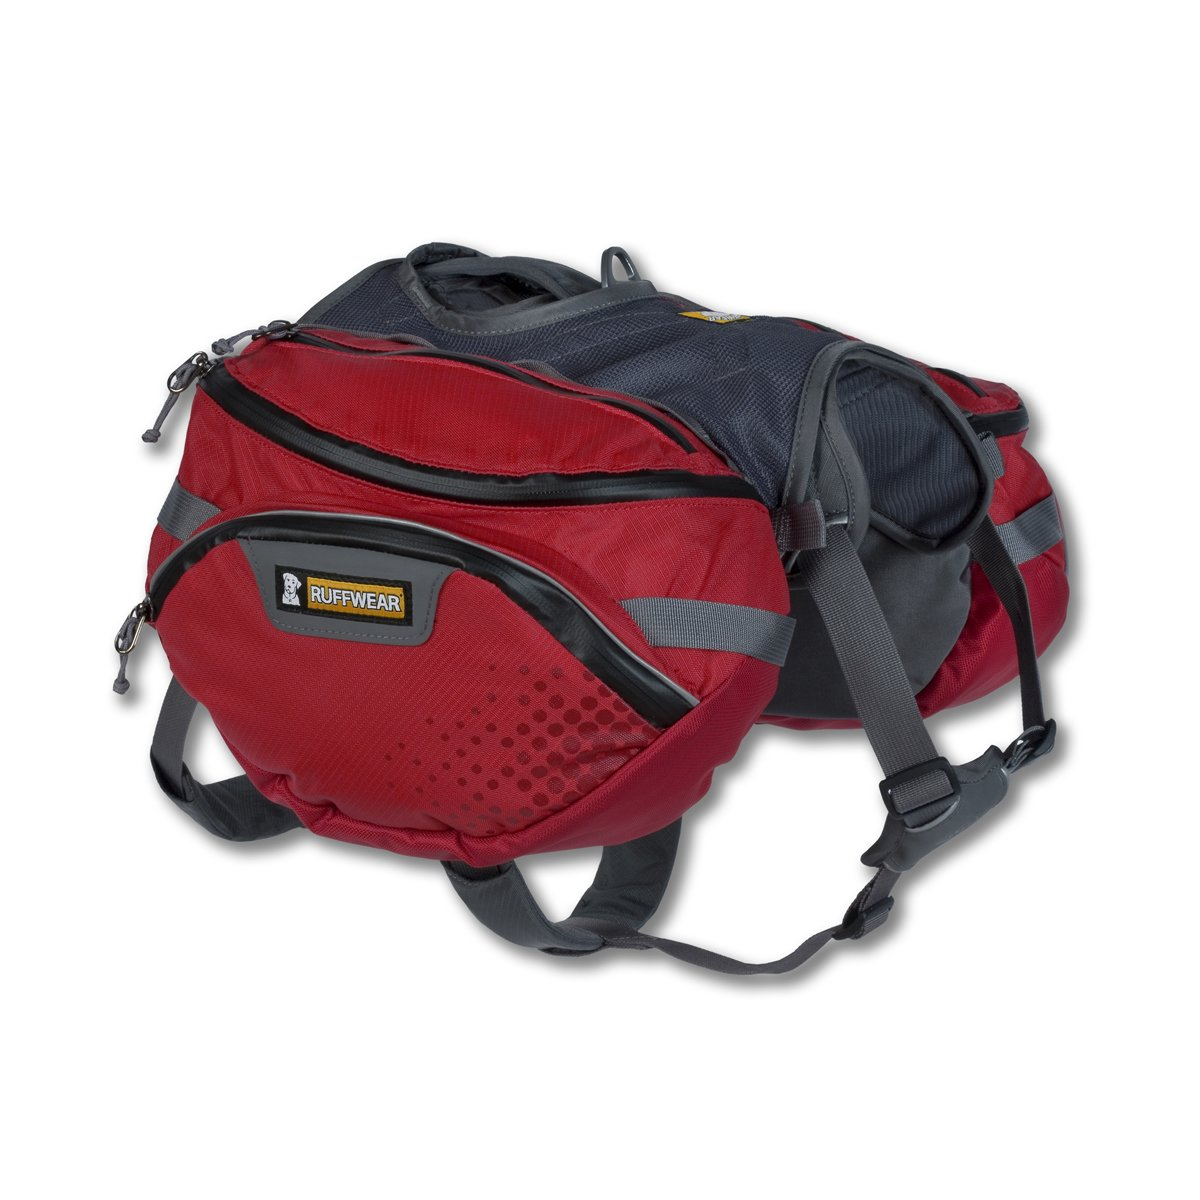 RUFFWEAR - Palisades Multi-Day Backcountry Pack for Dogs Red Currant Medium 50201-615M